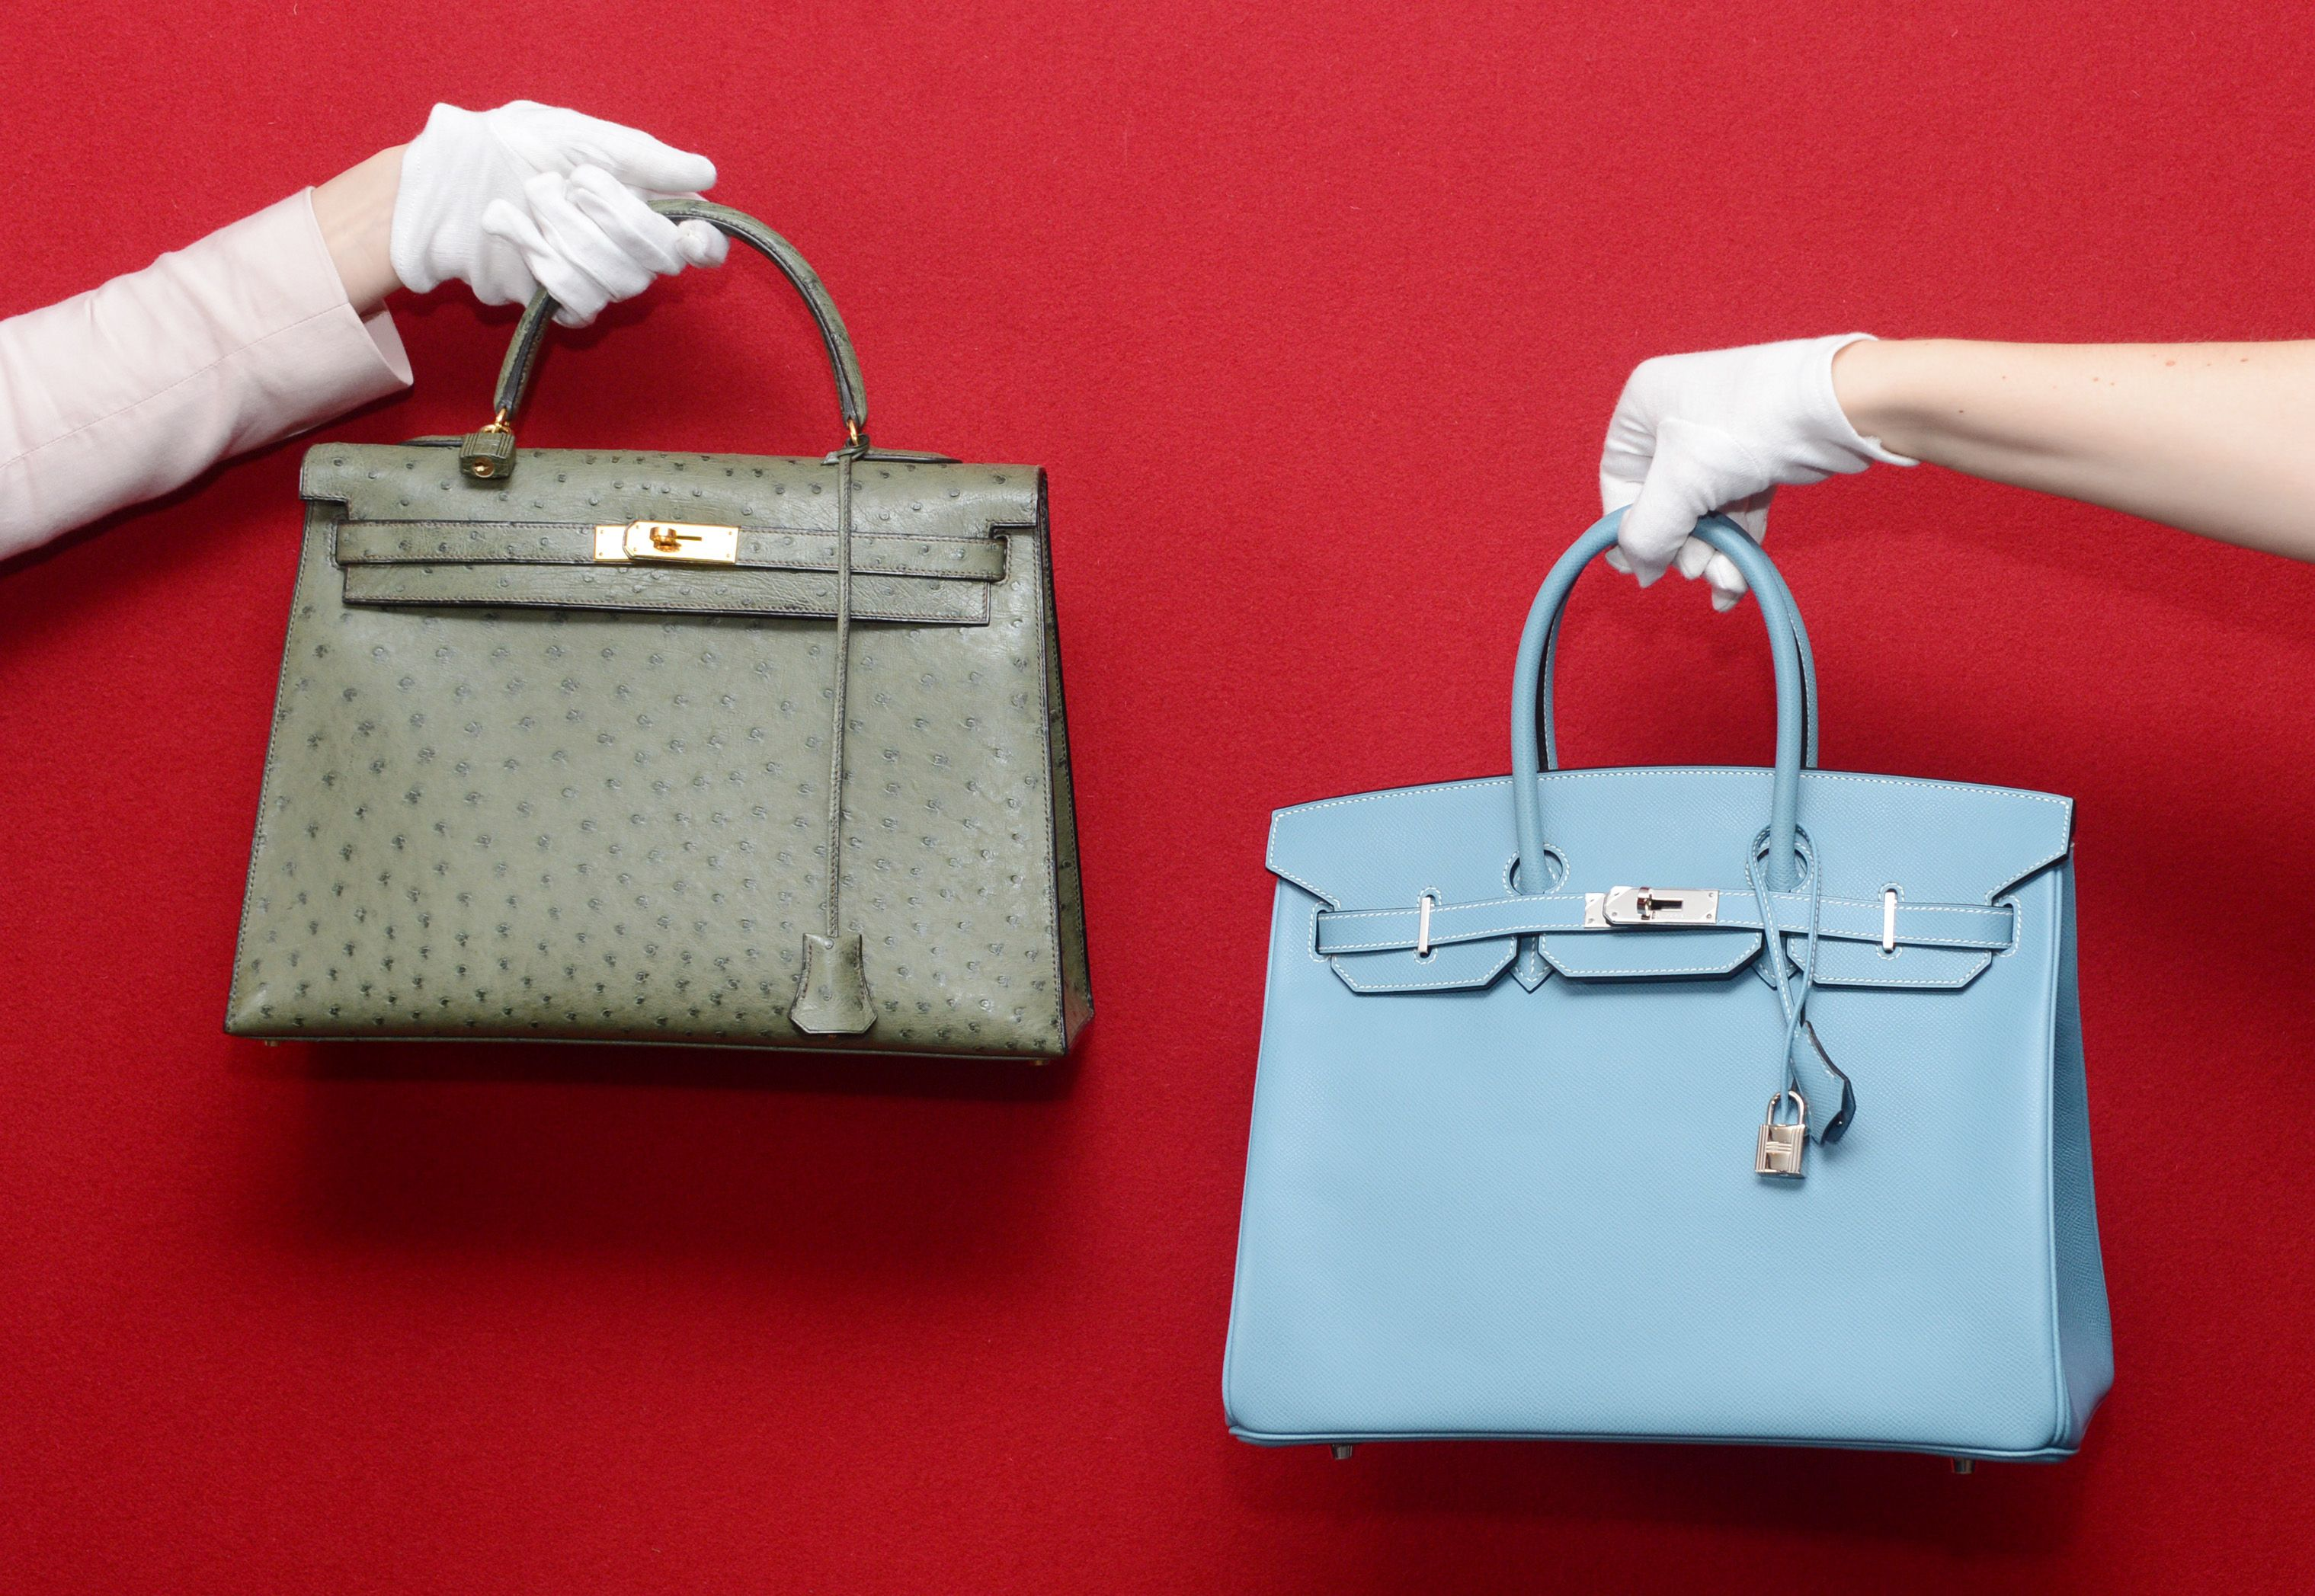 11 Things You Didn t Know About Hermes Birkins - Hermes Birkin Handbag Facts f044aa8f9be1